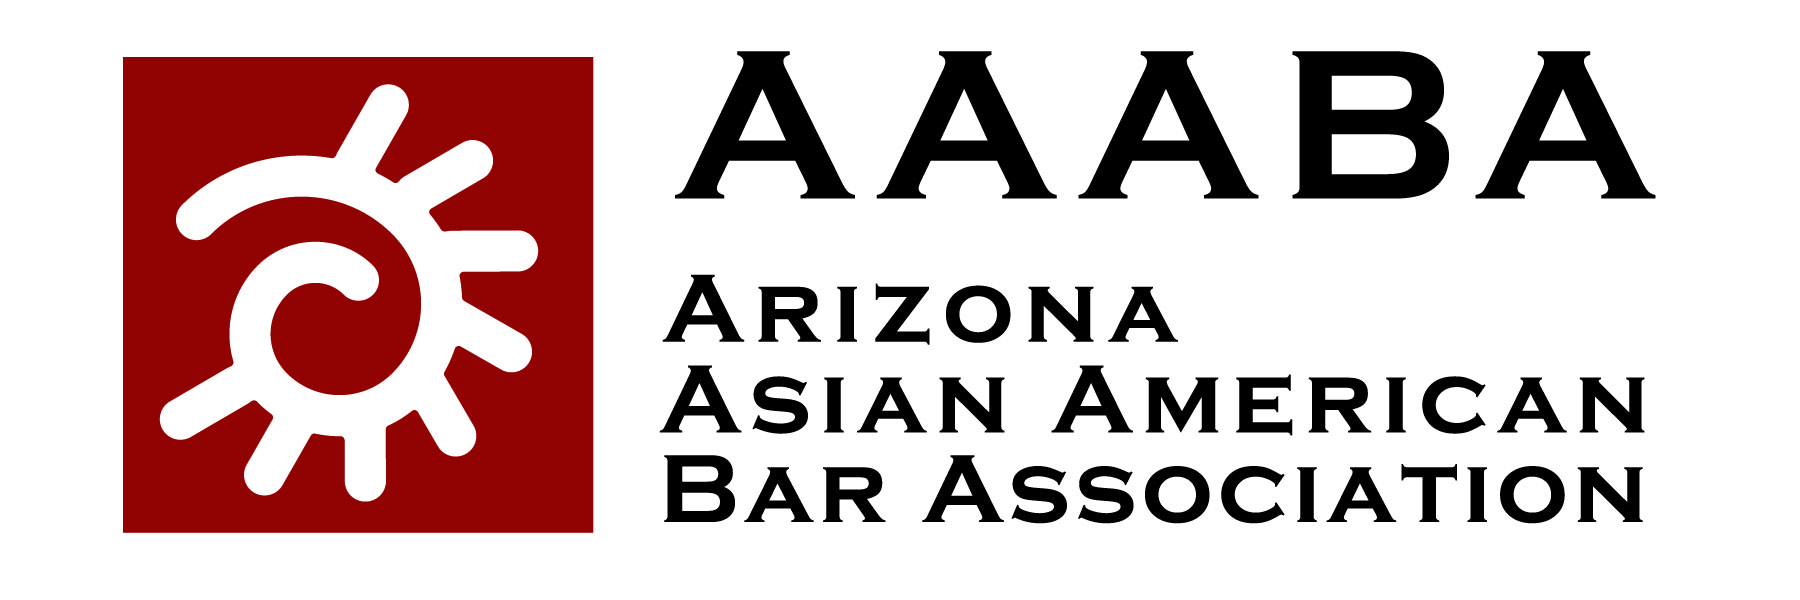 Arizona Asian American Bar Association